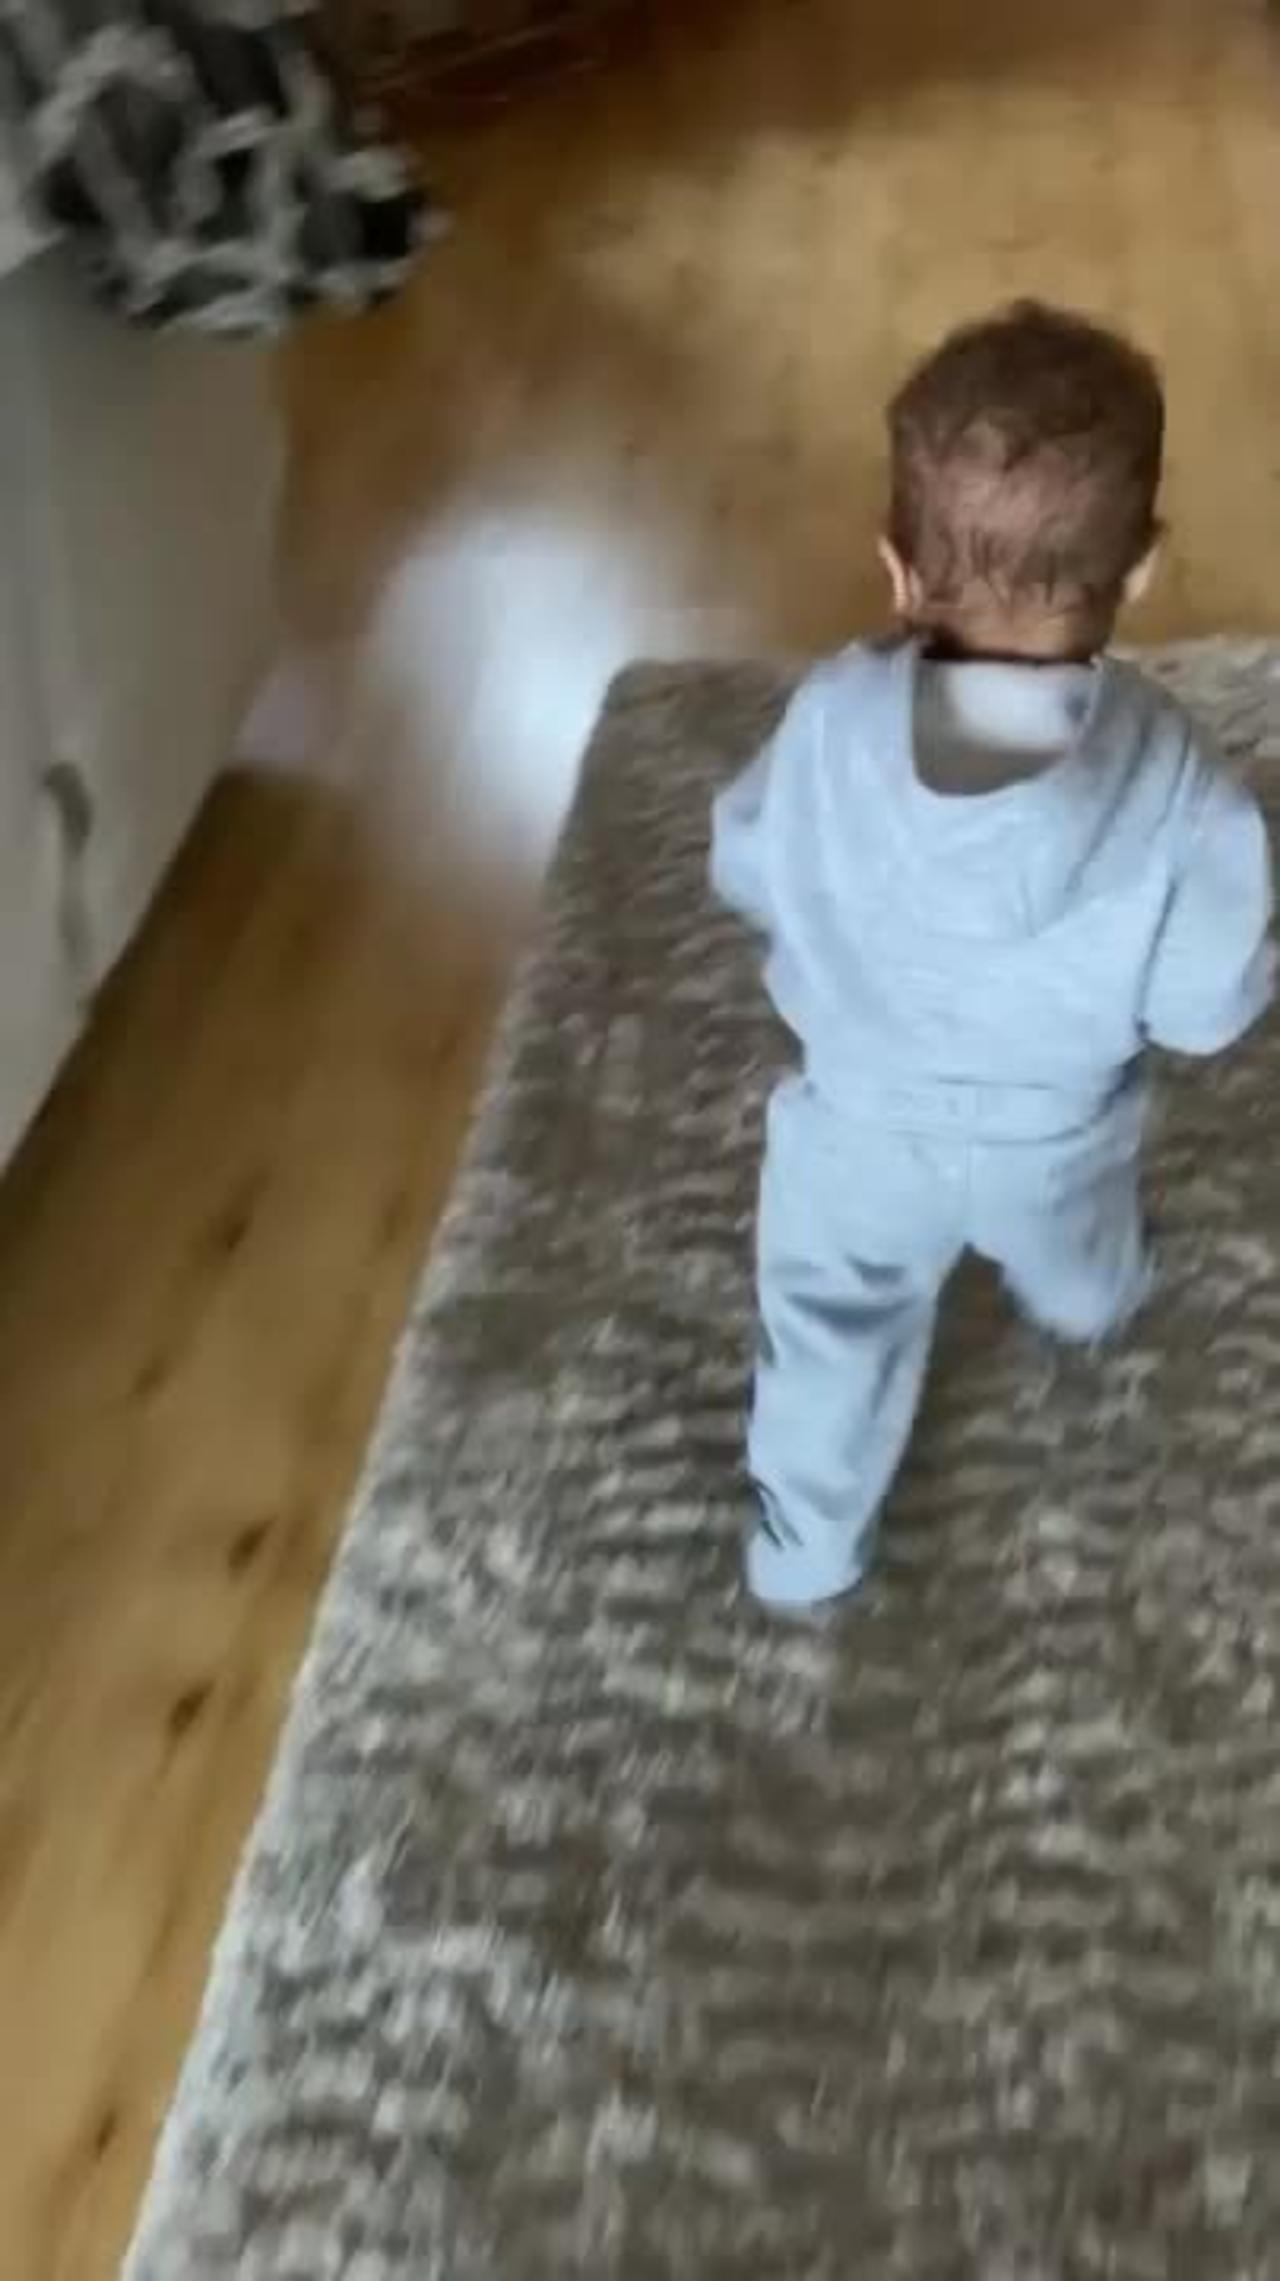 Toddler Slips and Falls Over Backwards While Running Around Holding Football